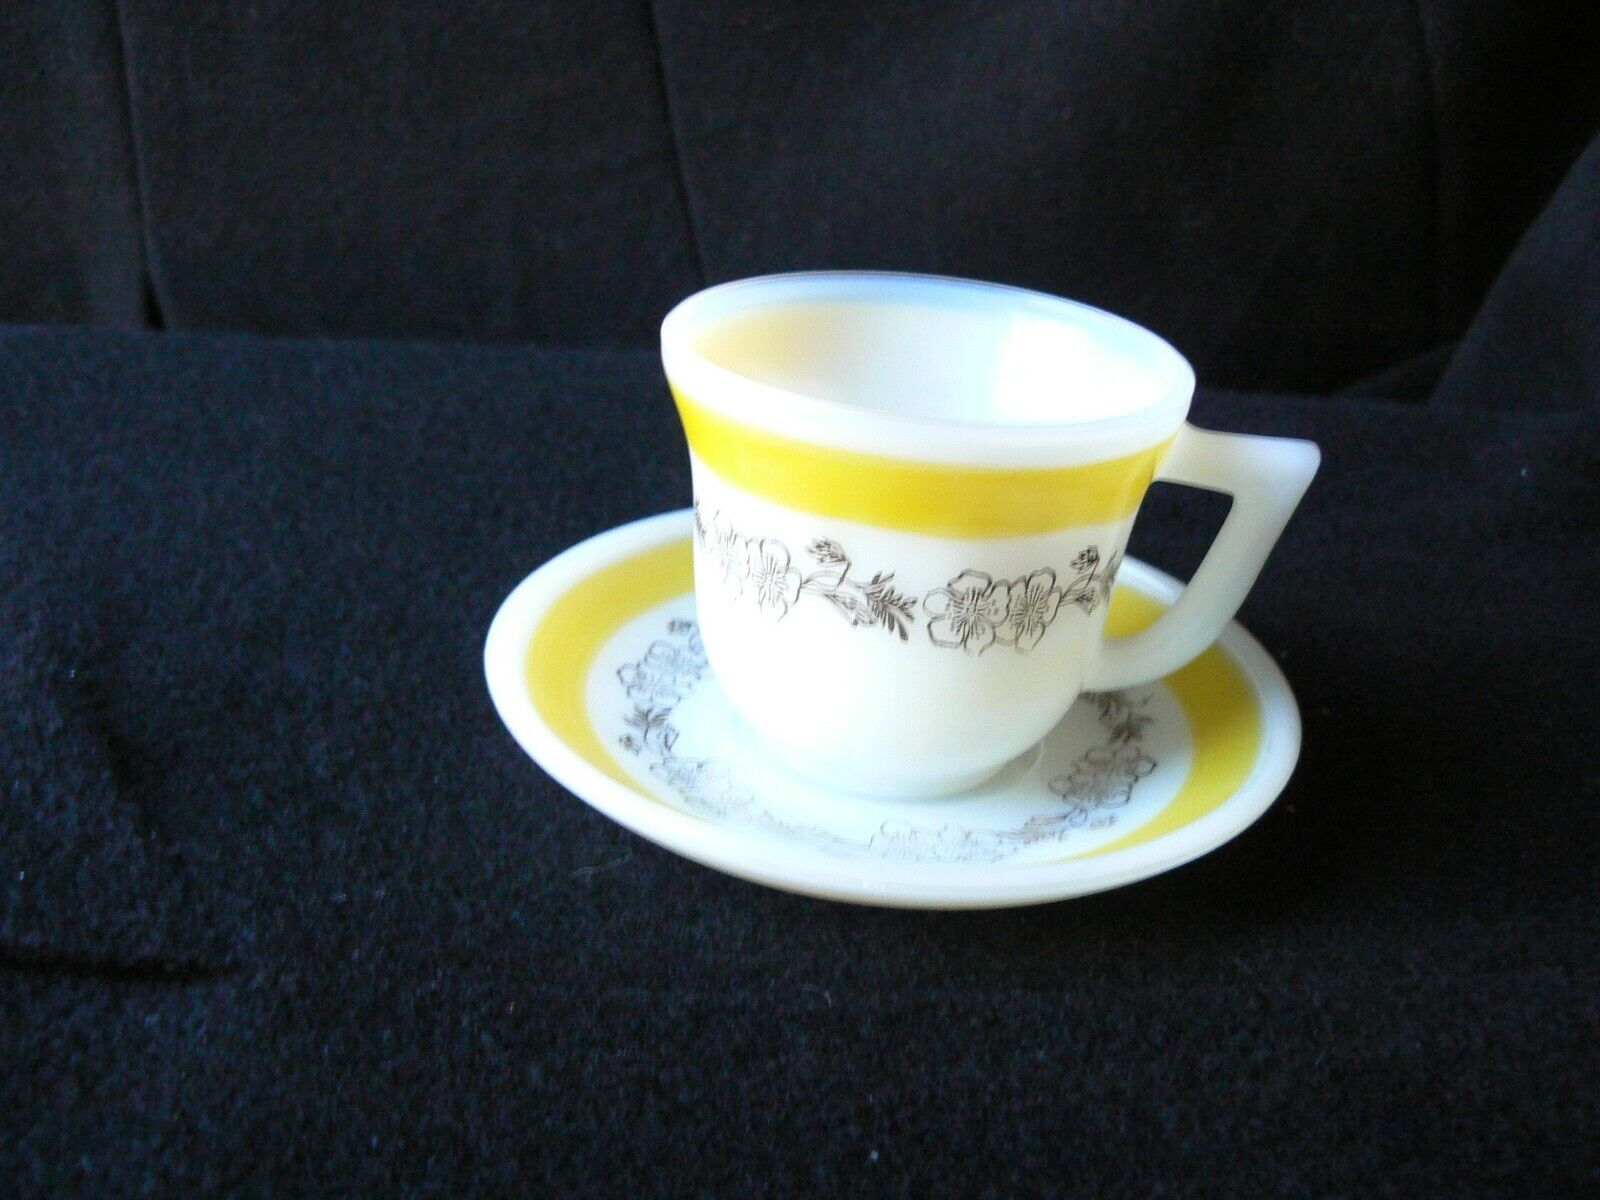 Milk glass with yellow band demitasse cup and saucer with gold apple blossoms